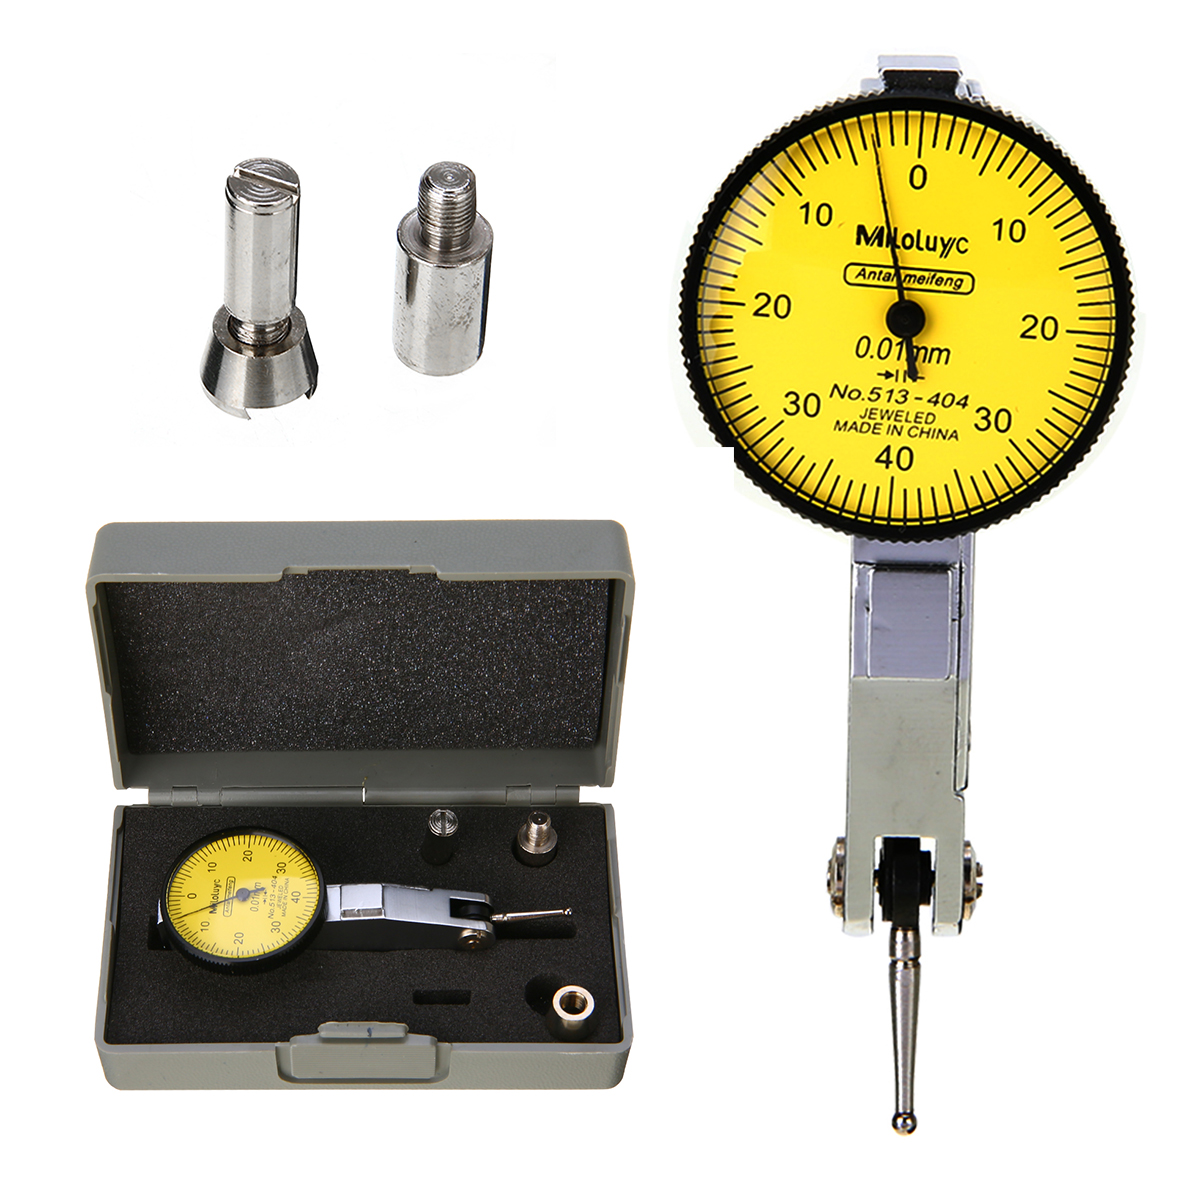 Portable Mini Lever Dial Gauge Test 0.01mm Resolution Indicator Precision Metric with Dovetail Rails 0-40-0 Measure Tool